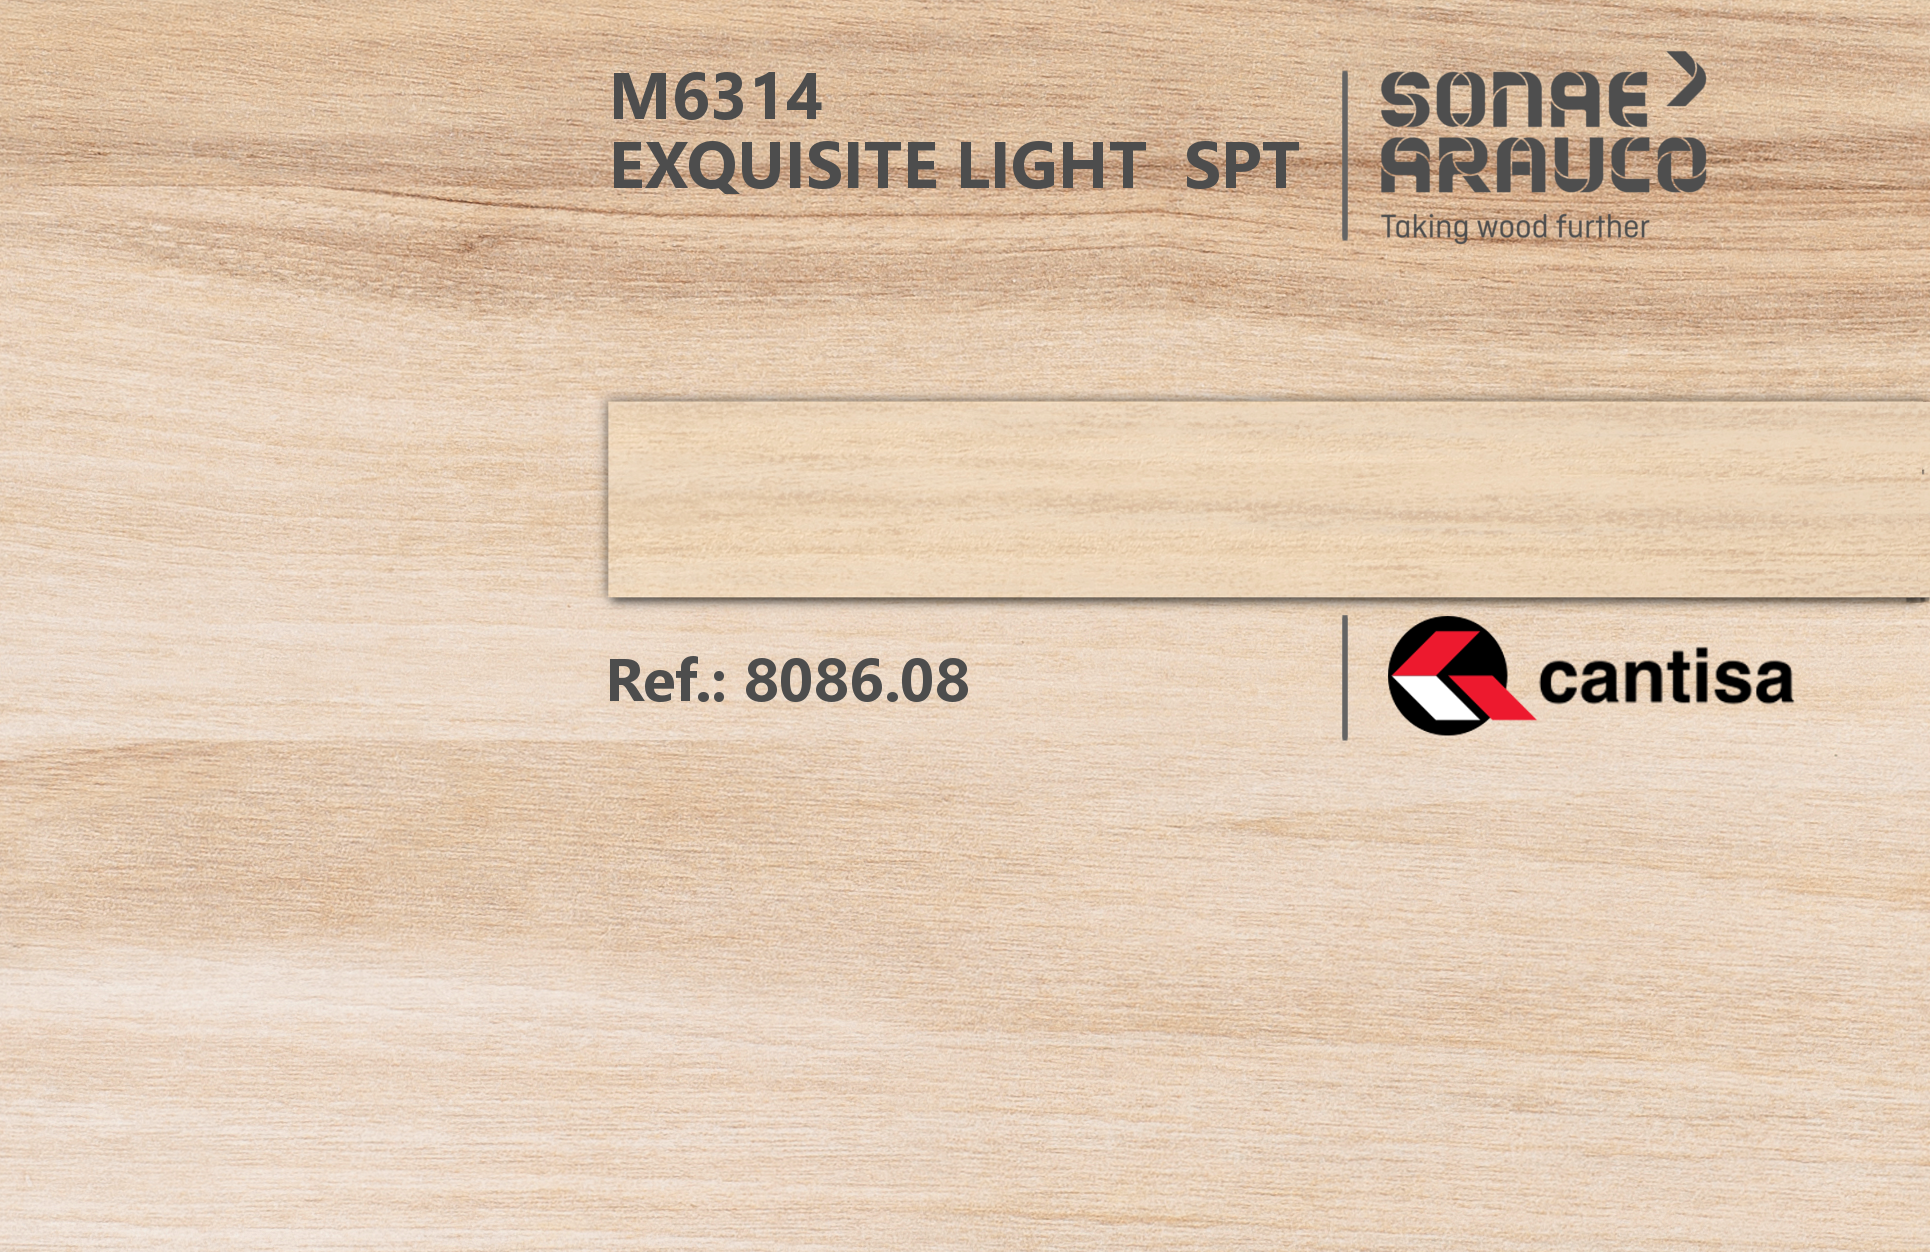 Exquisite Light | Innovus Sonae Arauco